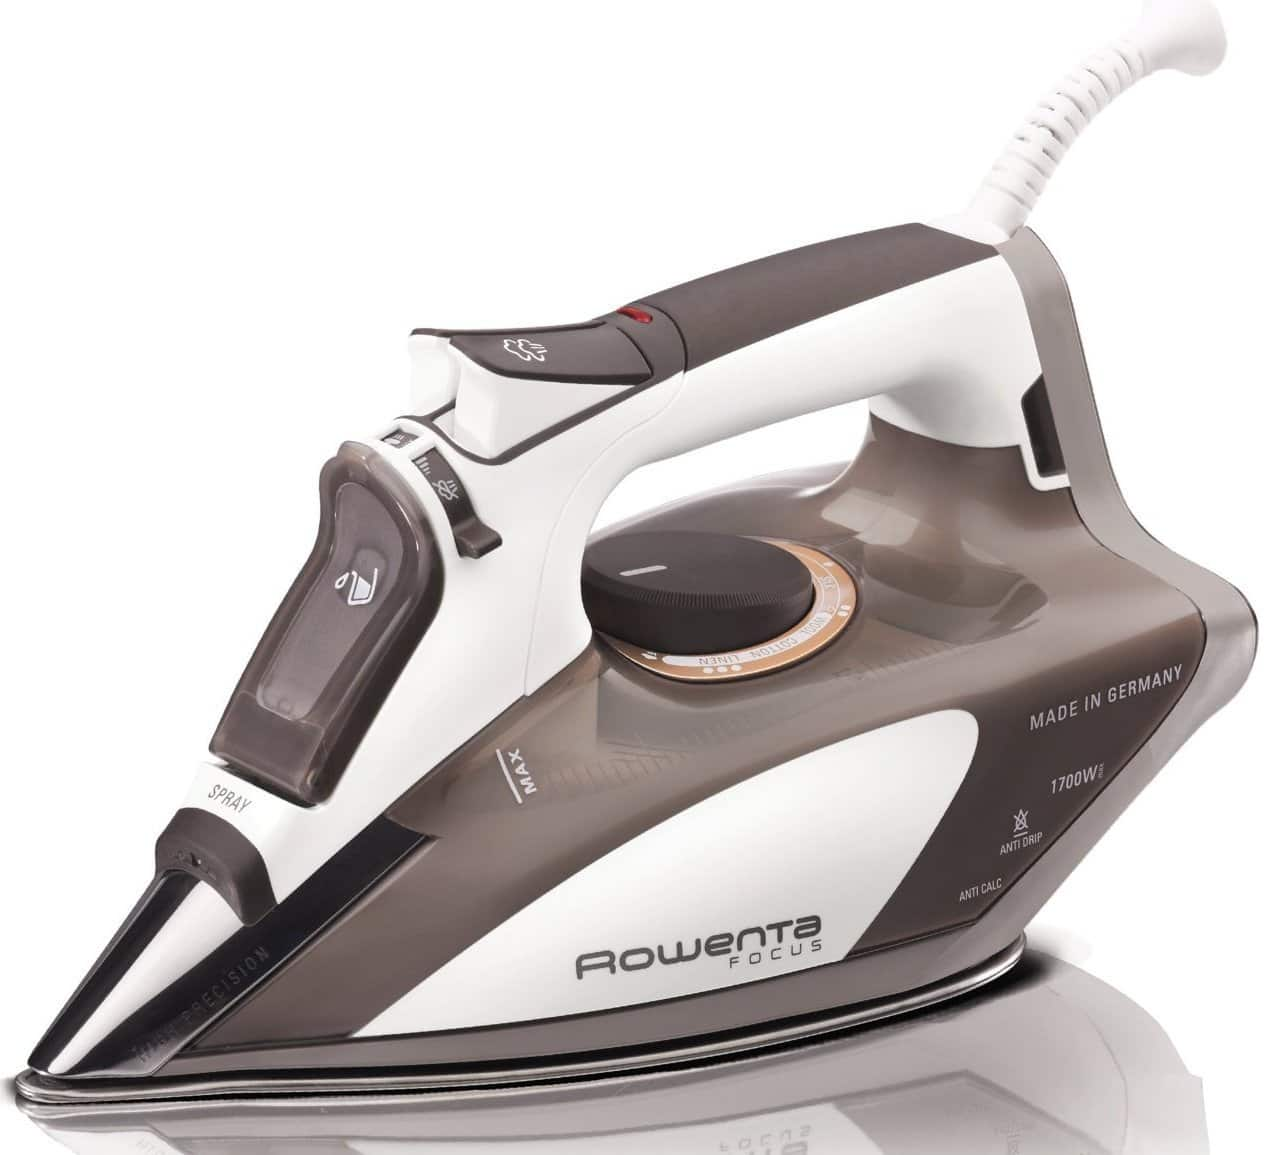 Amazon Prime Members: Rowenta Focus 1700W DW5080 Micro Steam Iron w/ Stainless Steel Soleplate $53 + Free Shipping